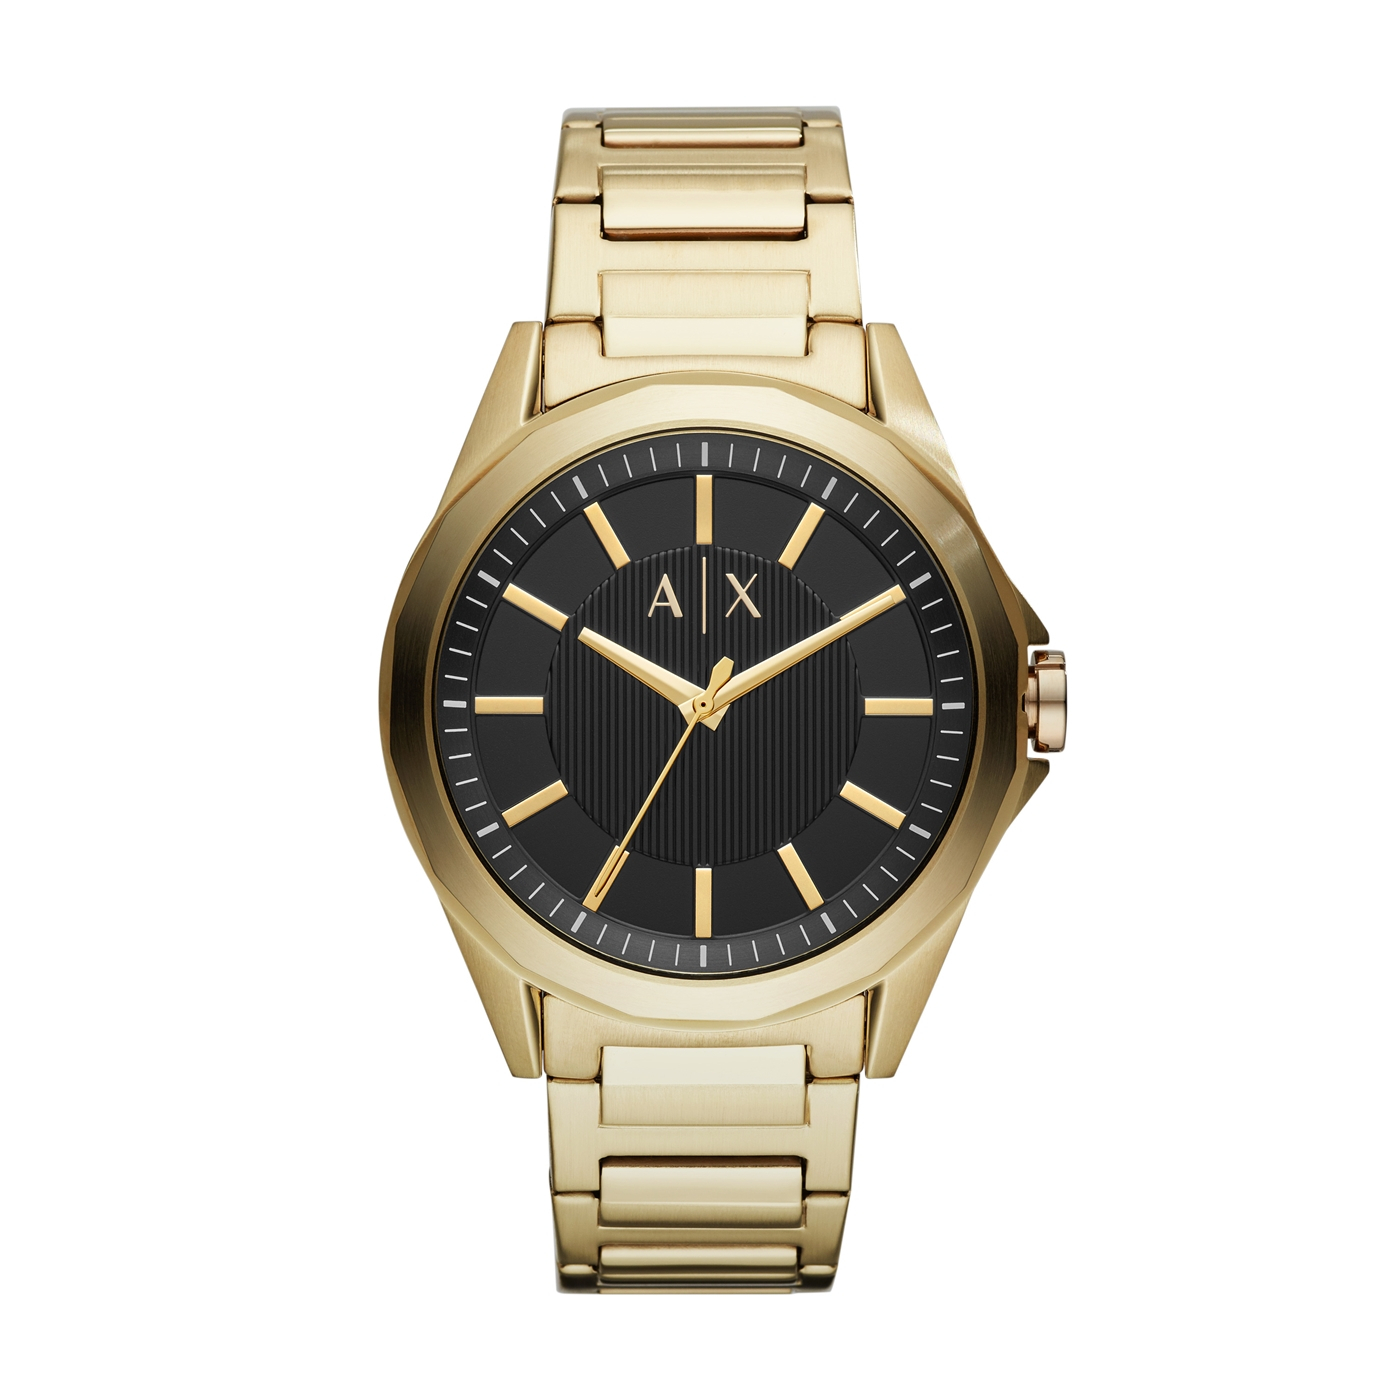 Immagine di Armani Exchange Drexler Watch AX2619